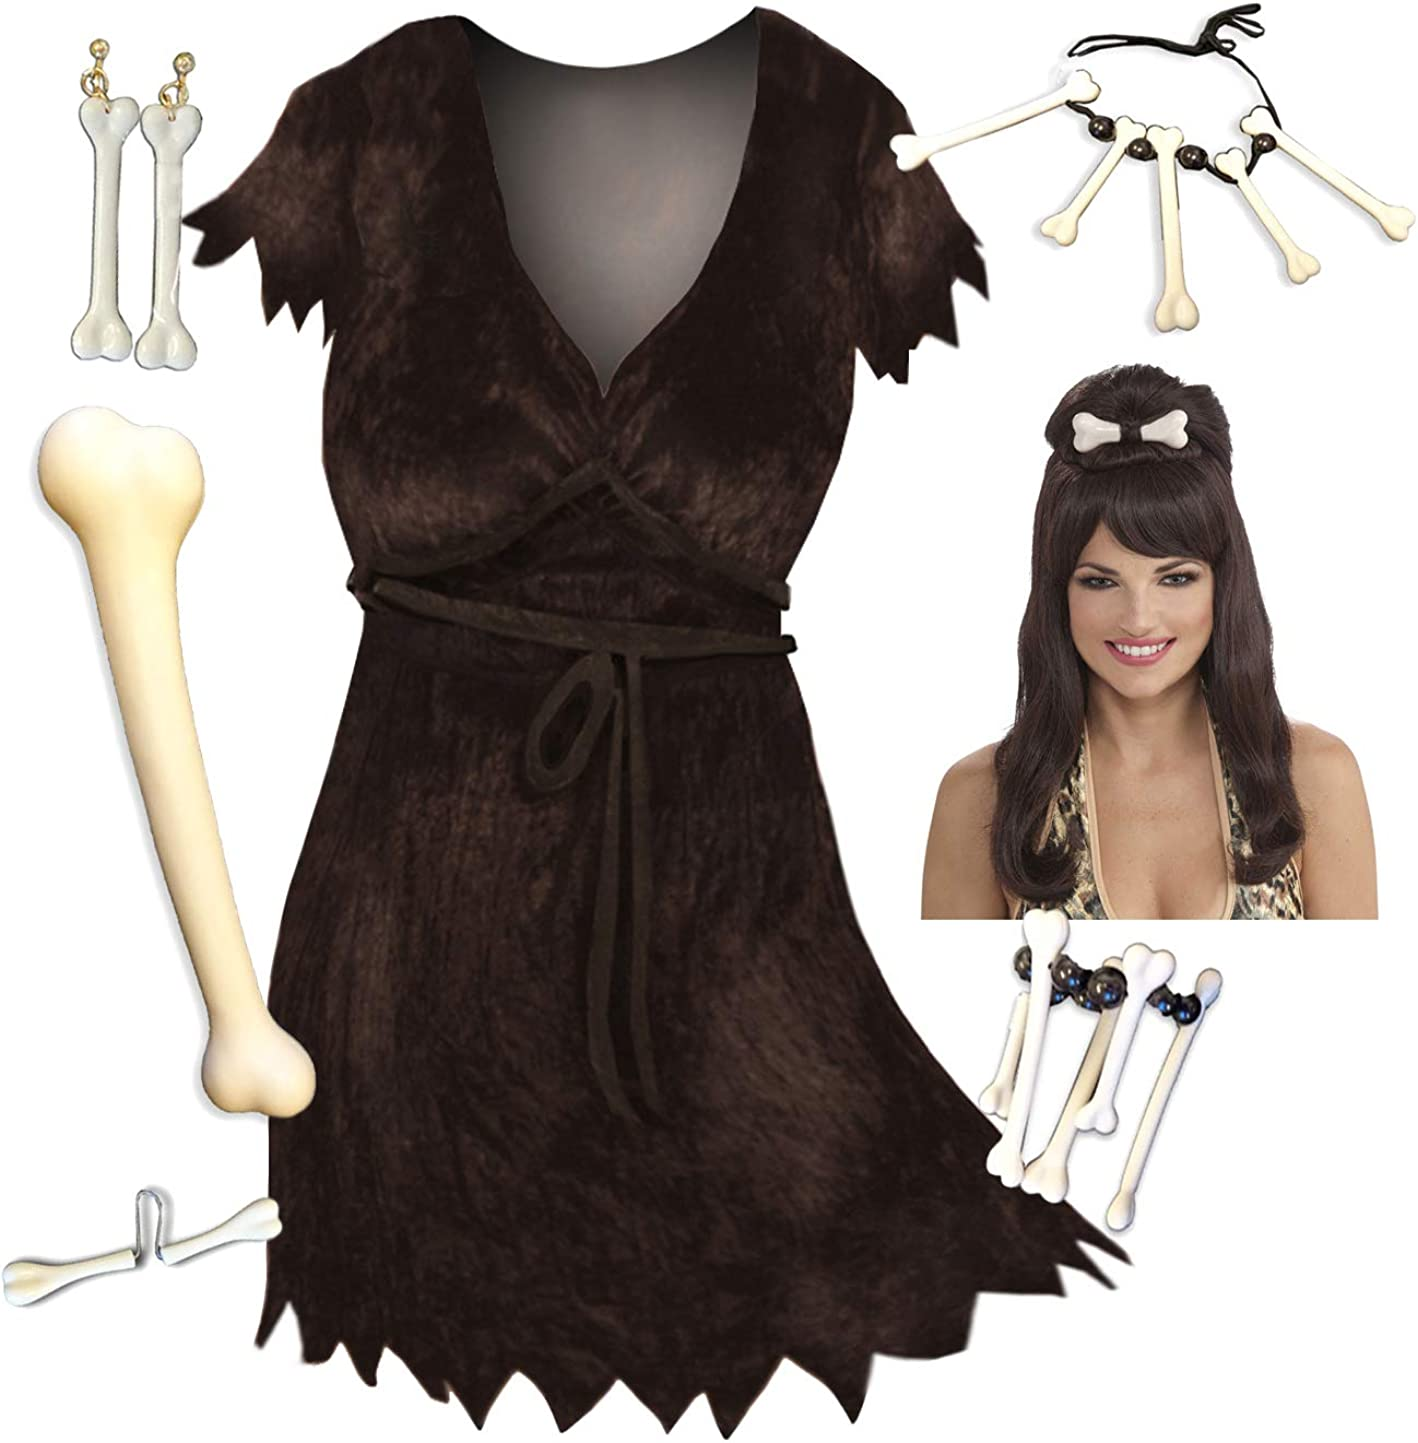 Selling and selling Outlet SALE Sanctuarie Designs Cave Woman Plus Halloween Costume Deluxe Size